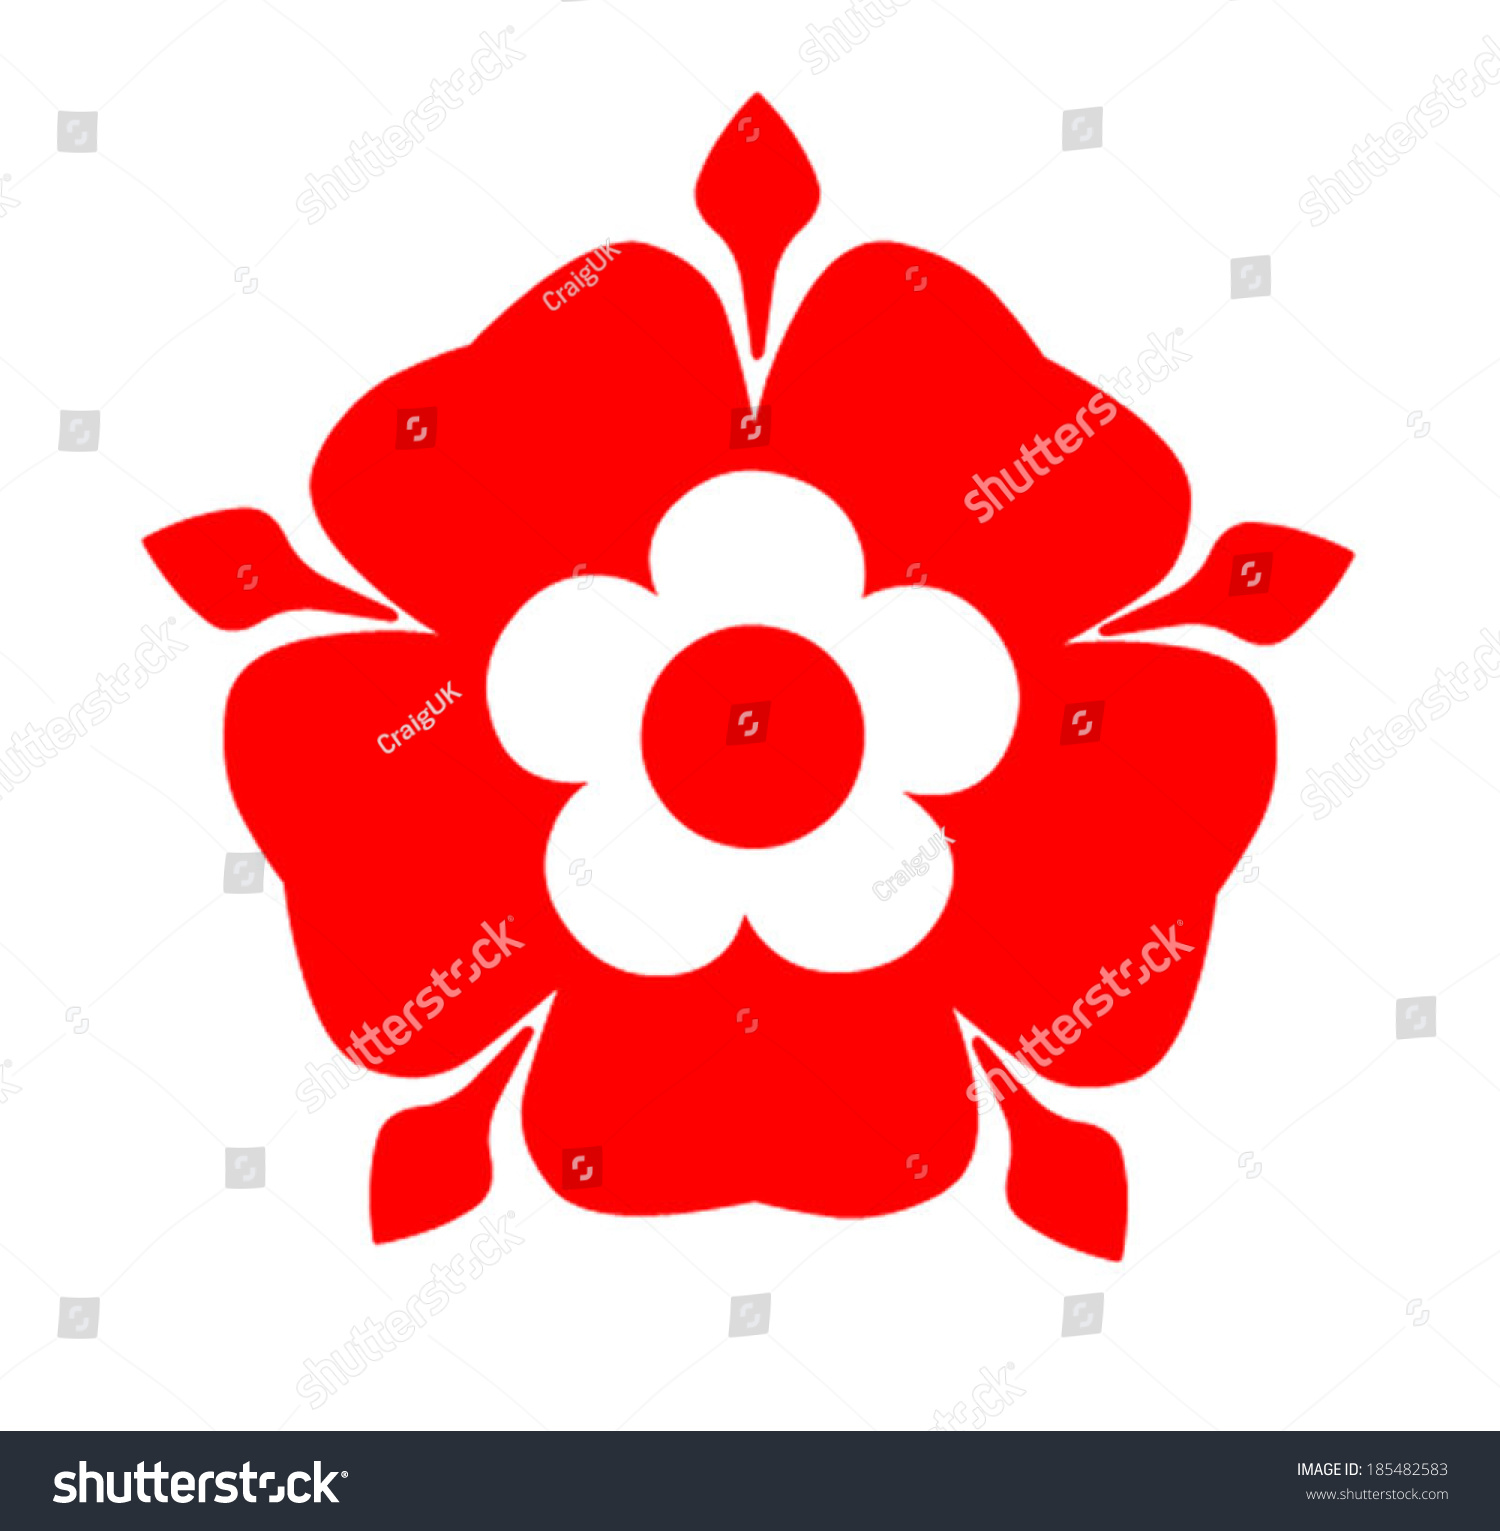 tudor rose tudor rose symbol lancashire stock vector 185482583 shutterstock. Black Bedroom Furniture Sets. Home Design Ideas